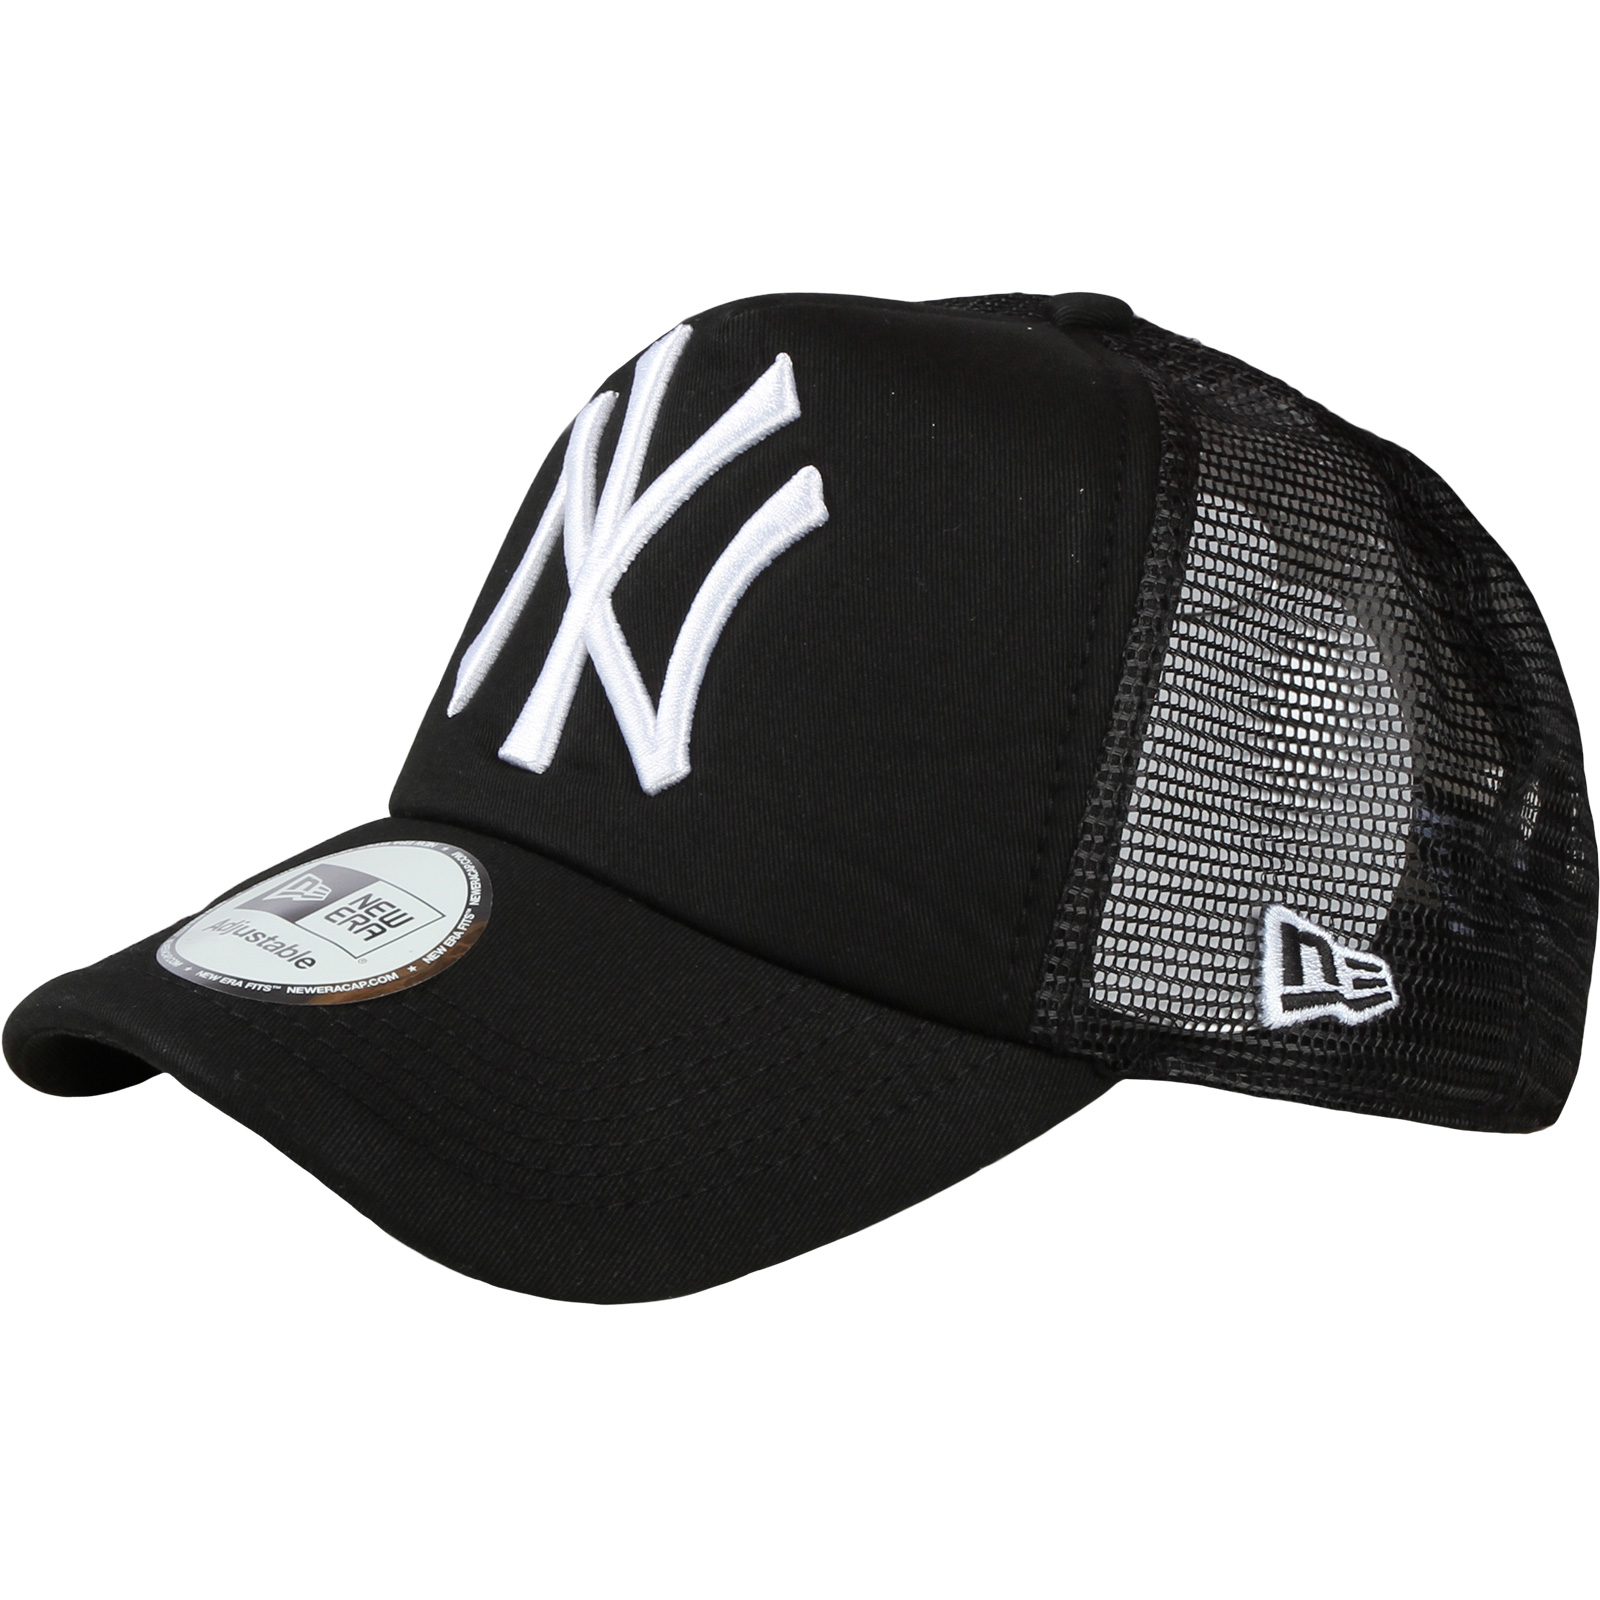 1762b69f6 NEW ERA-MLB CLEAN TRUCKER Black/Black NOS | EXIsport Eshop